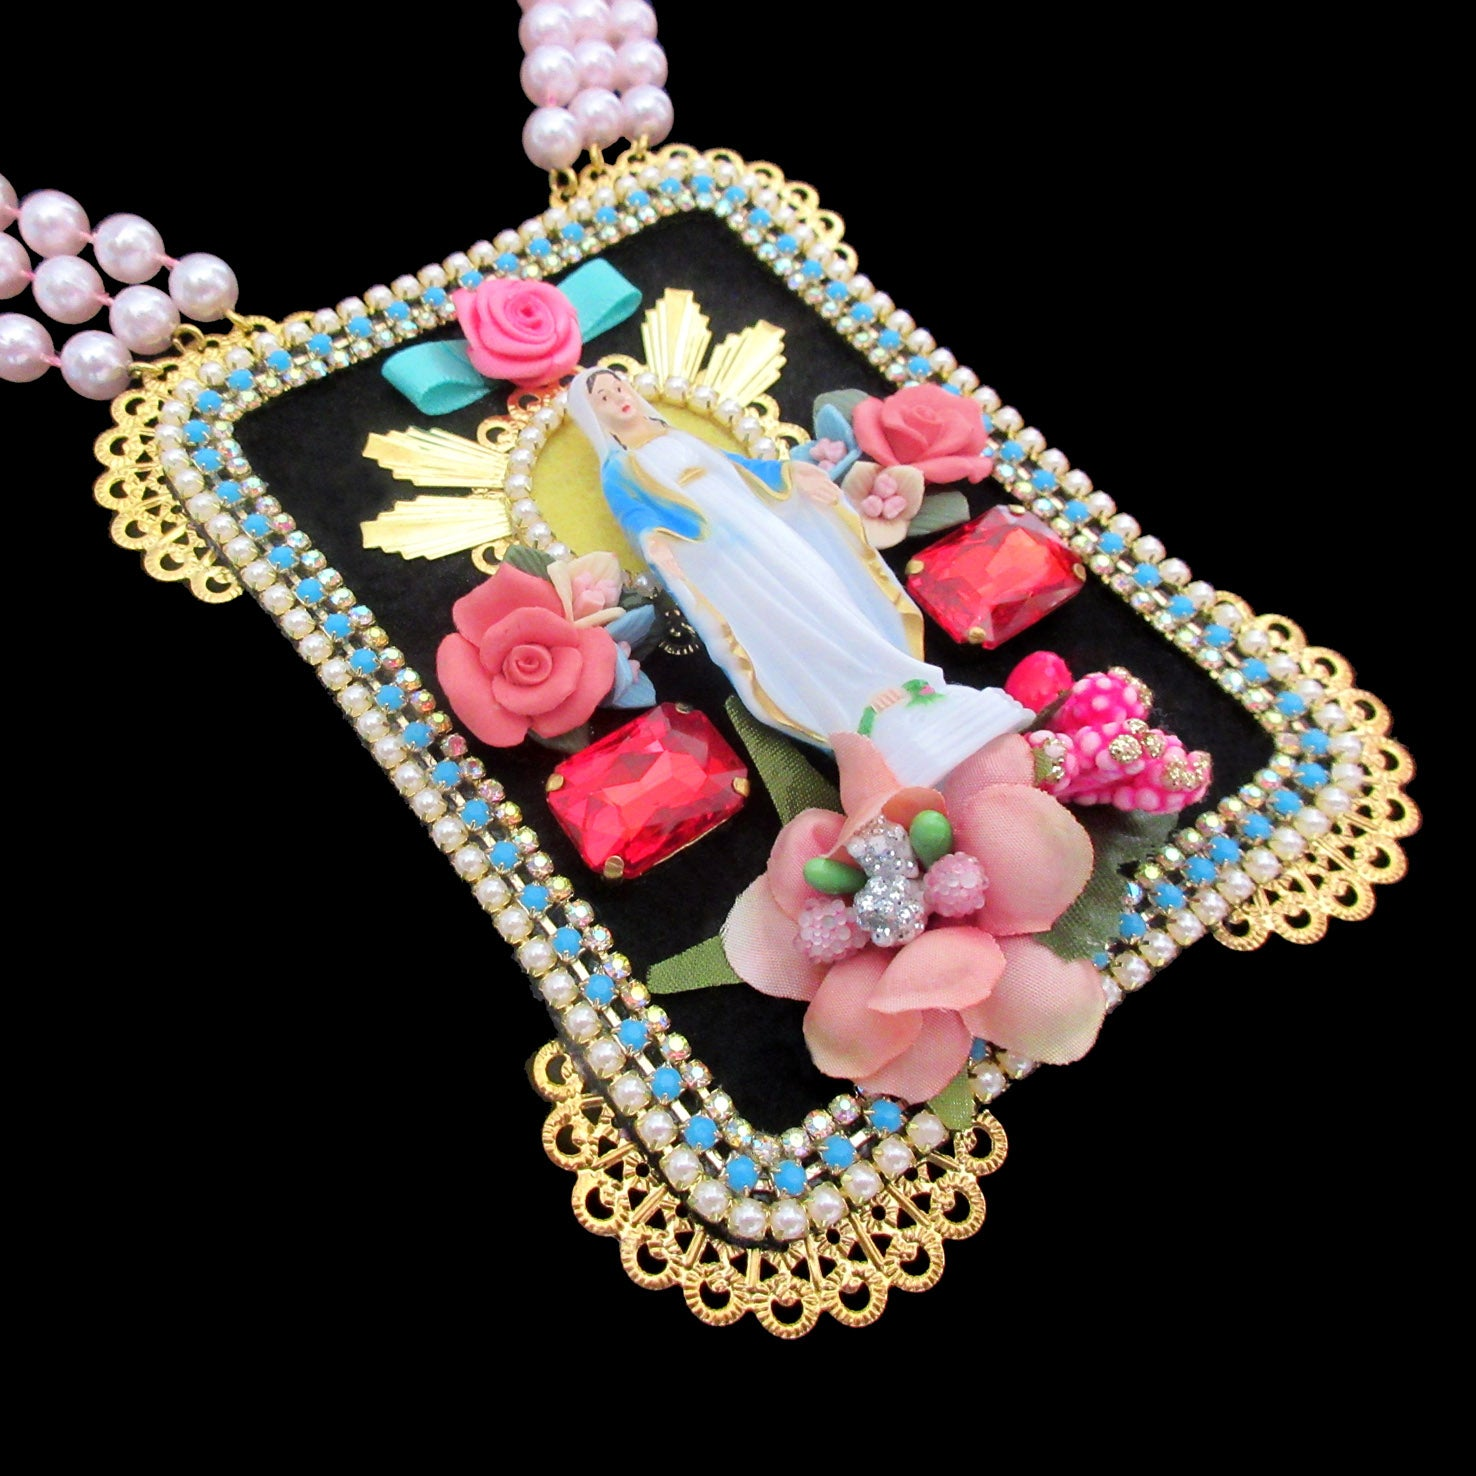 mouchkine jewelry handmade couture madonna iconic statement necklace.